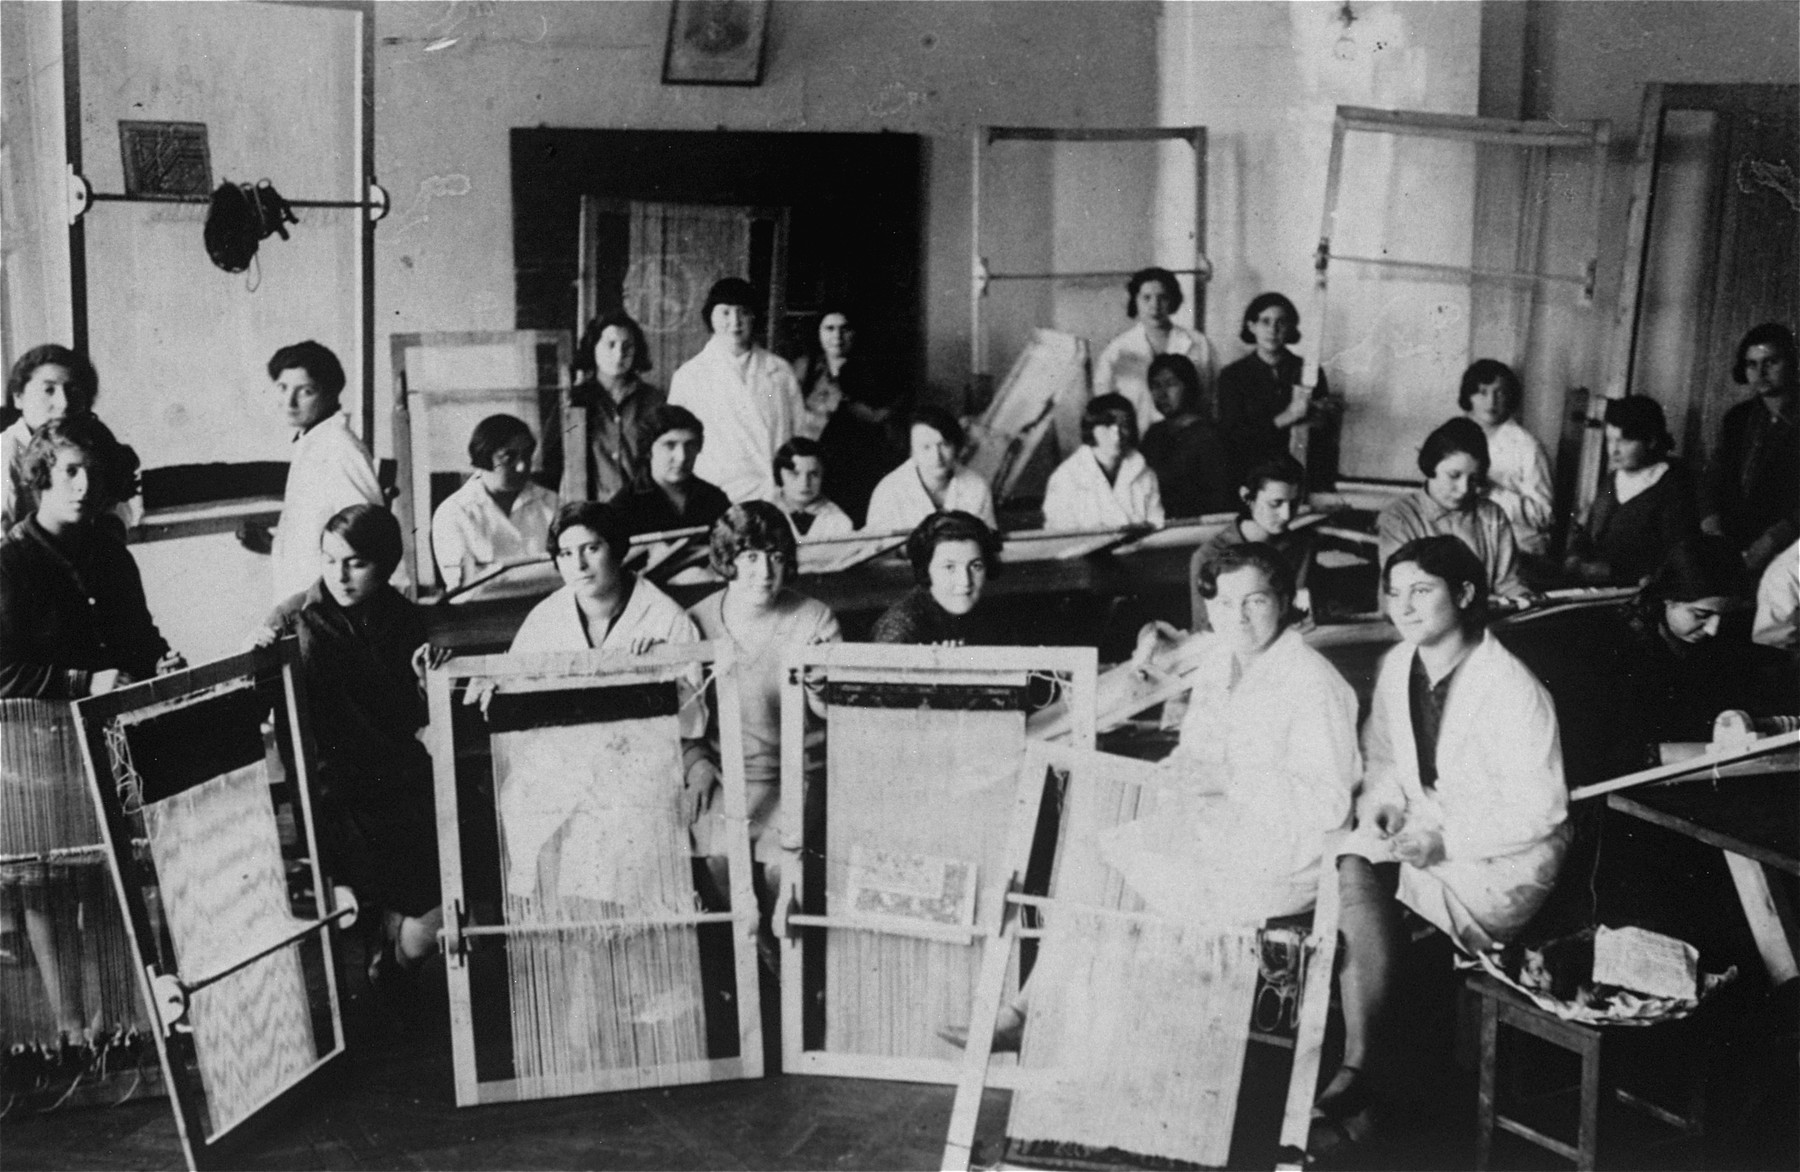 Jewish youth attend an afterschool weaving class in Vilna.   Among those pictured is Rosa Rudashevsky (front row, second from left).